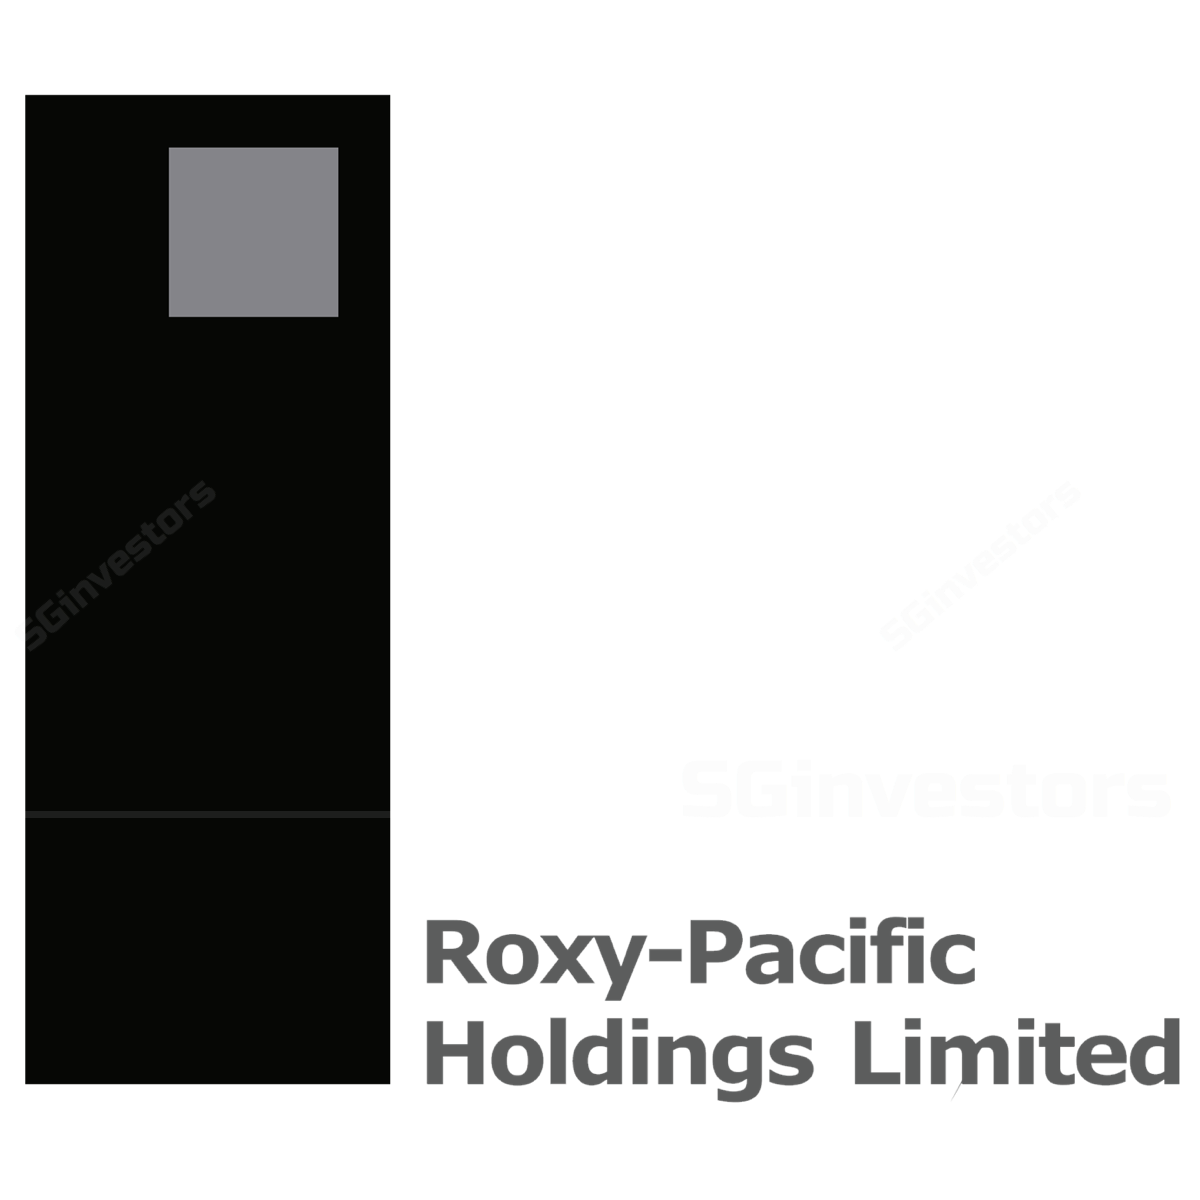 Roxy-Pacific Holdings - OCBC Investment 2016-11-25: To buy Grange Road freehold residential site